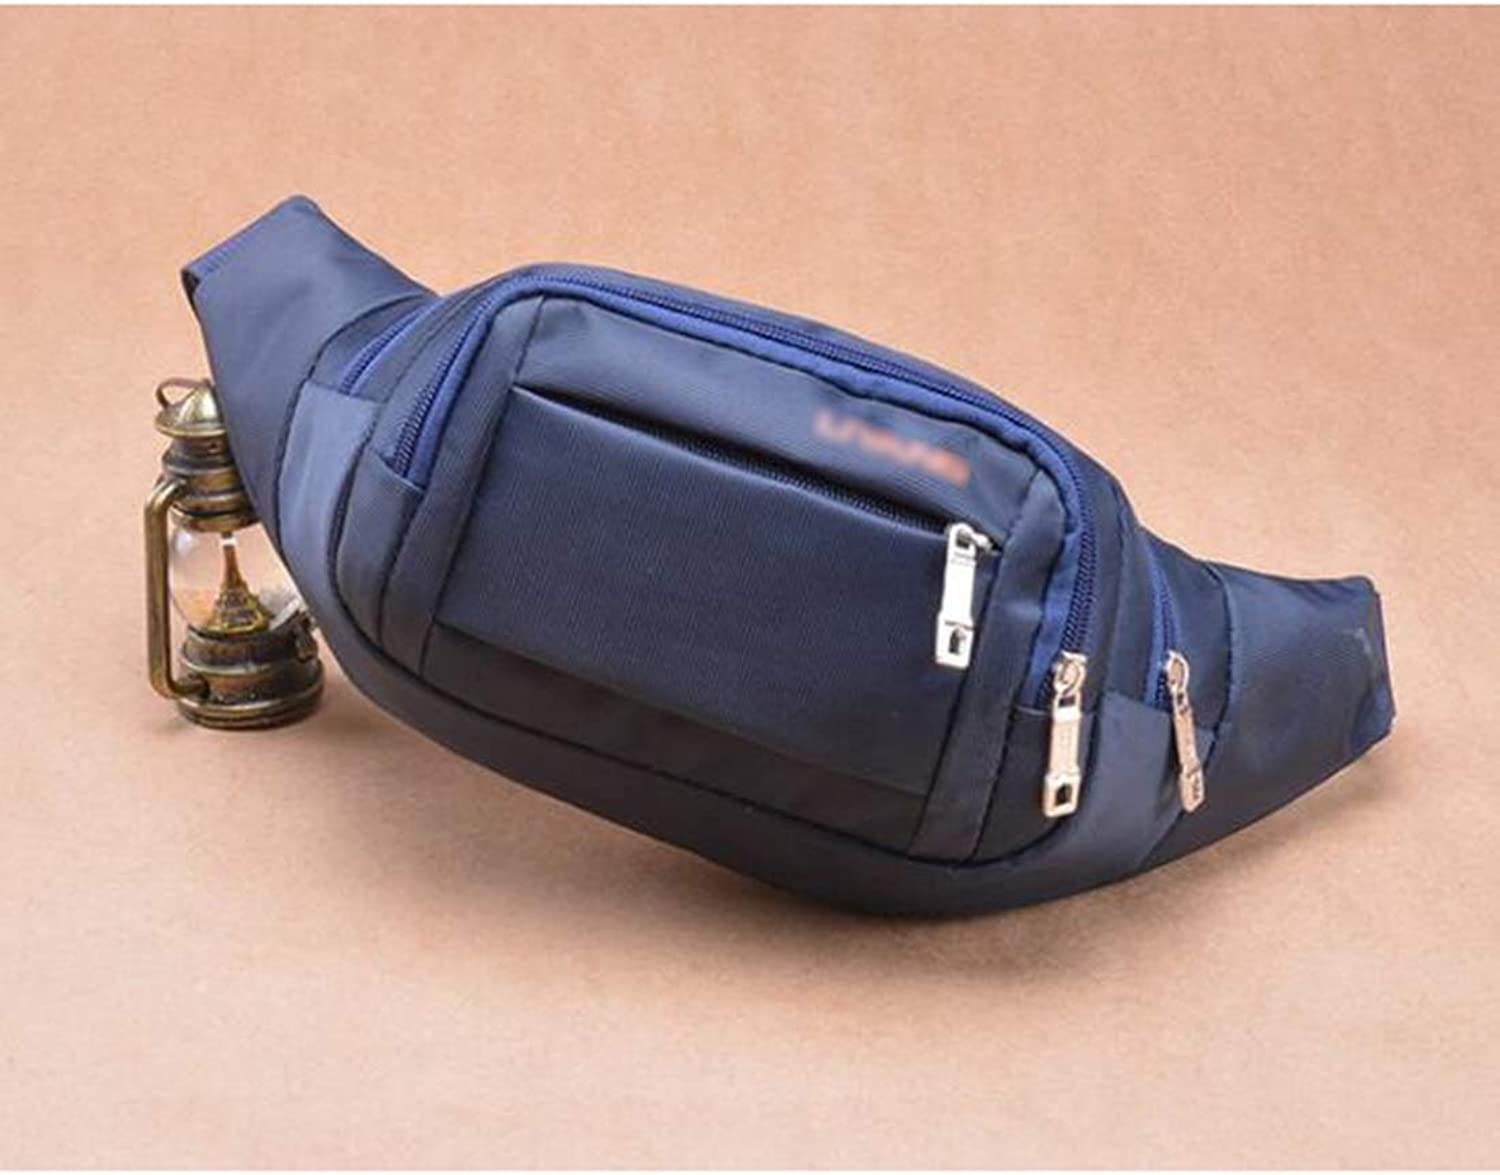 Sturdy West Handbag West Pouch Body Handbag 3WAY Motion Pocket Unisex Dual Lightweight. Large Capacity (color   blueee)